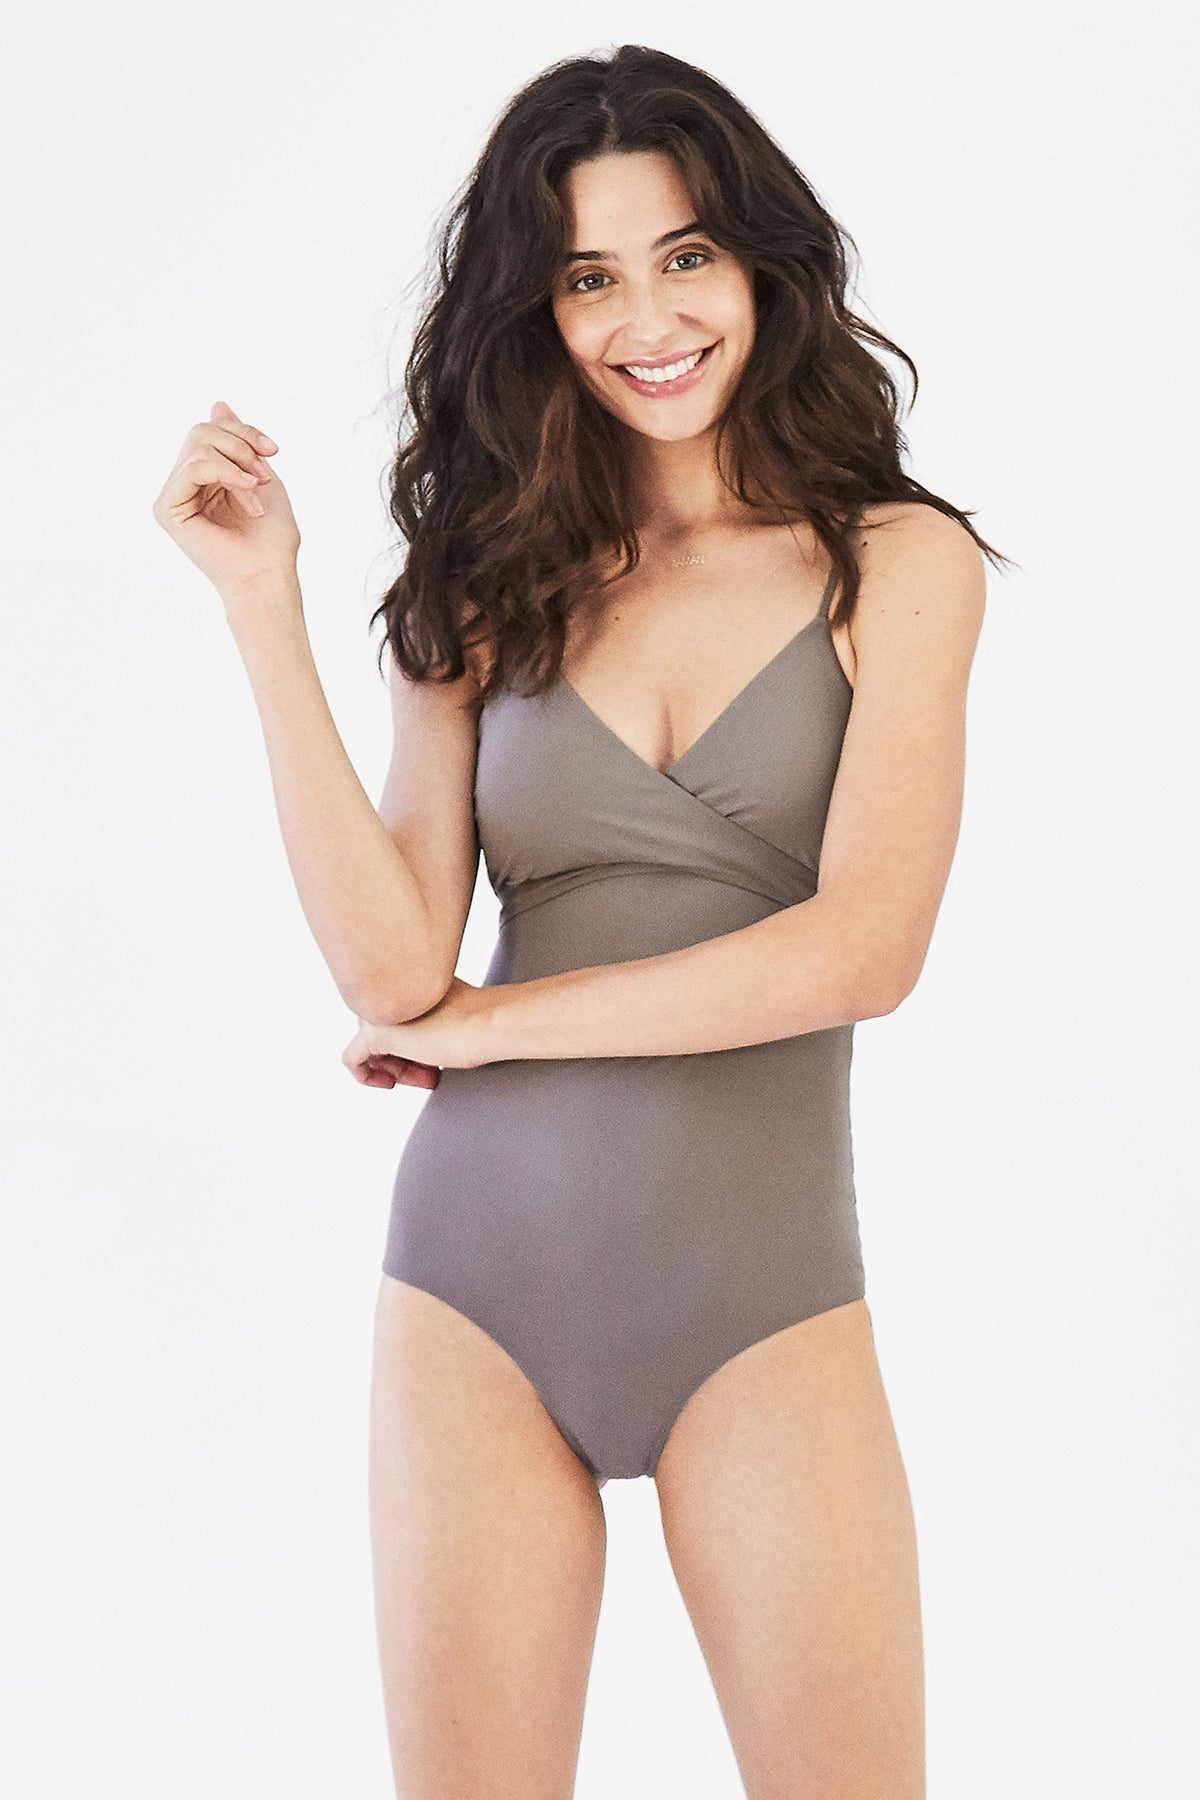 NORA ONE PIECE - SALE